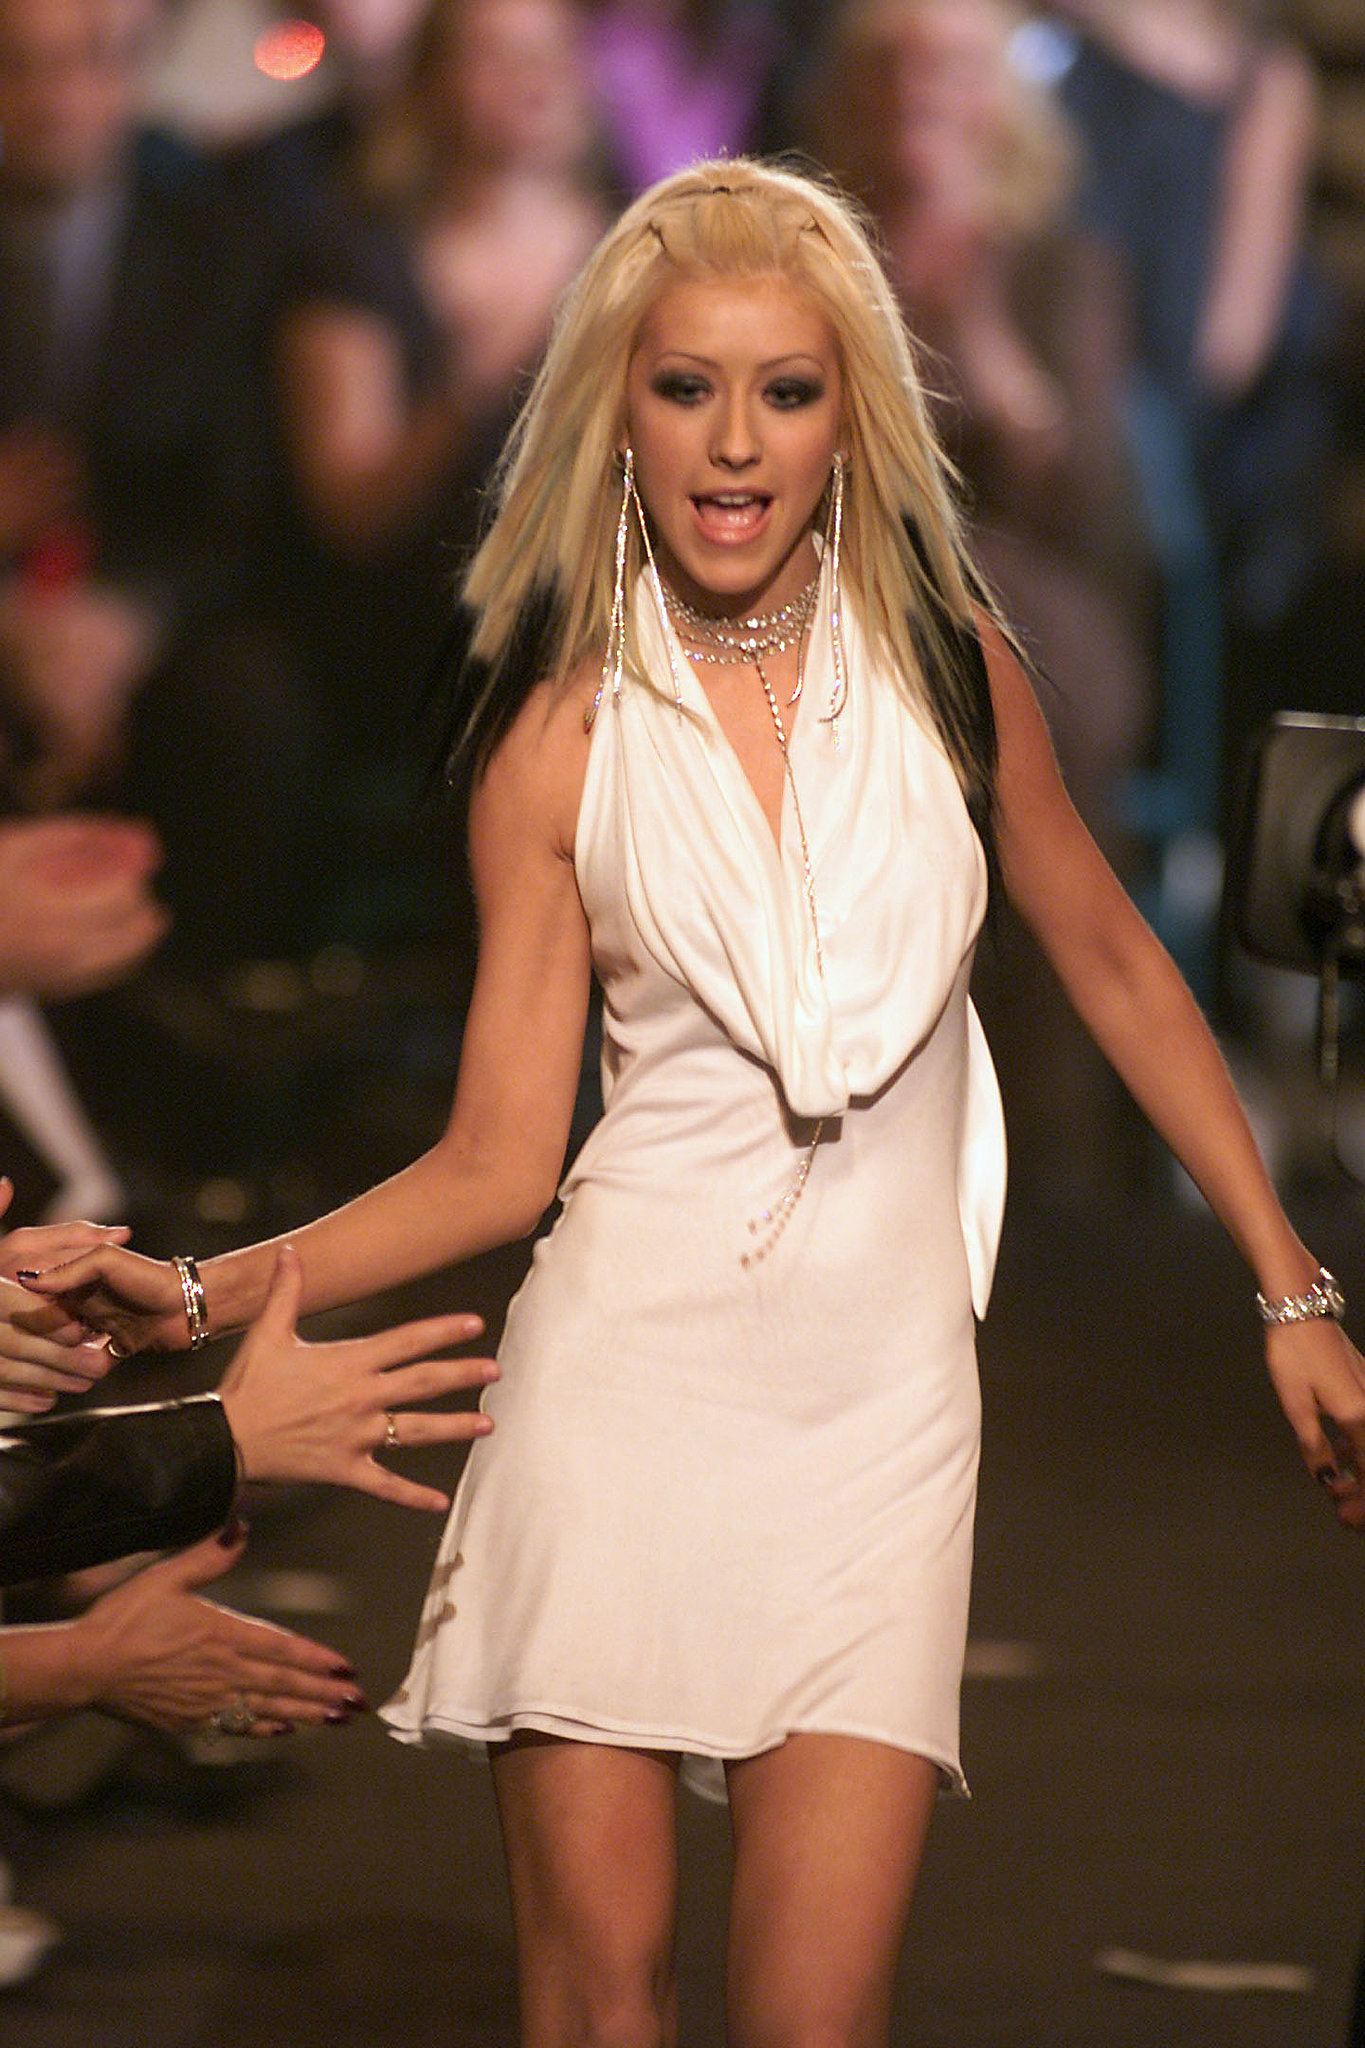 Christina Aguilera hit the stage during the 2000 show, back when it was held in December.